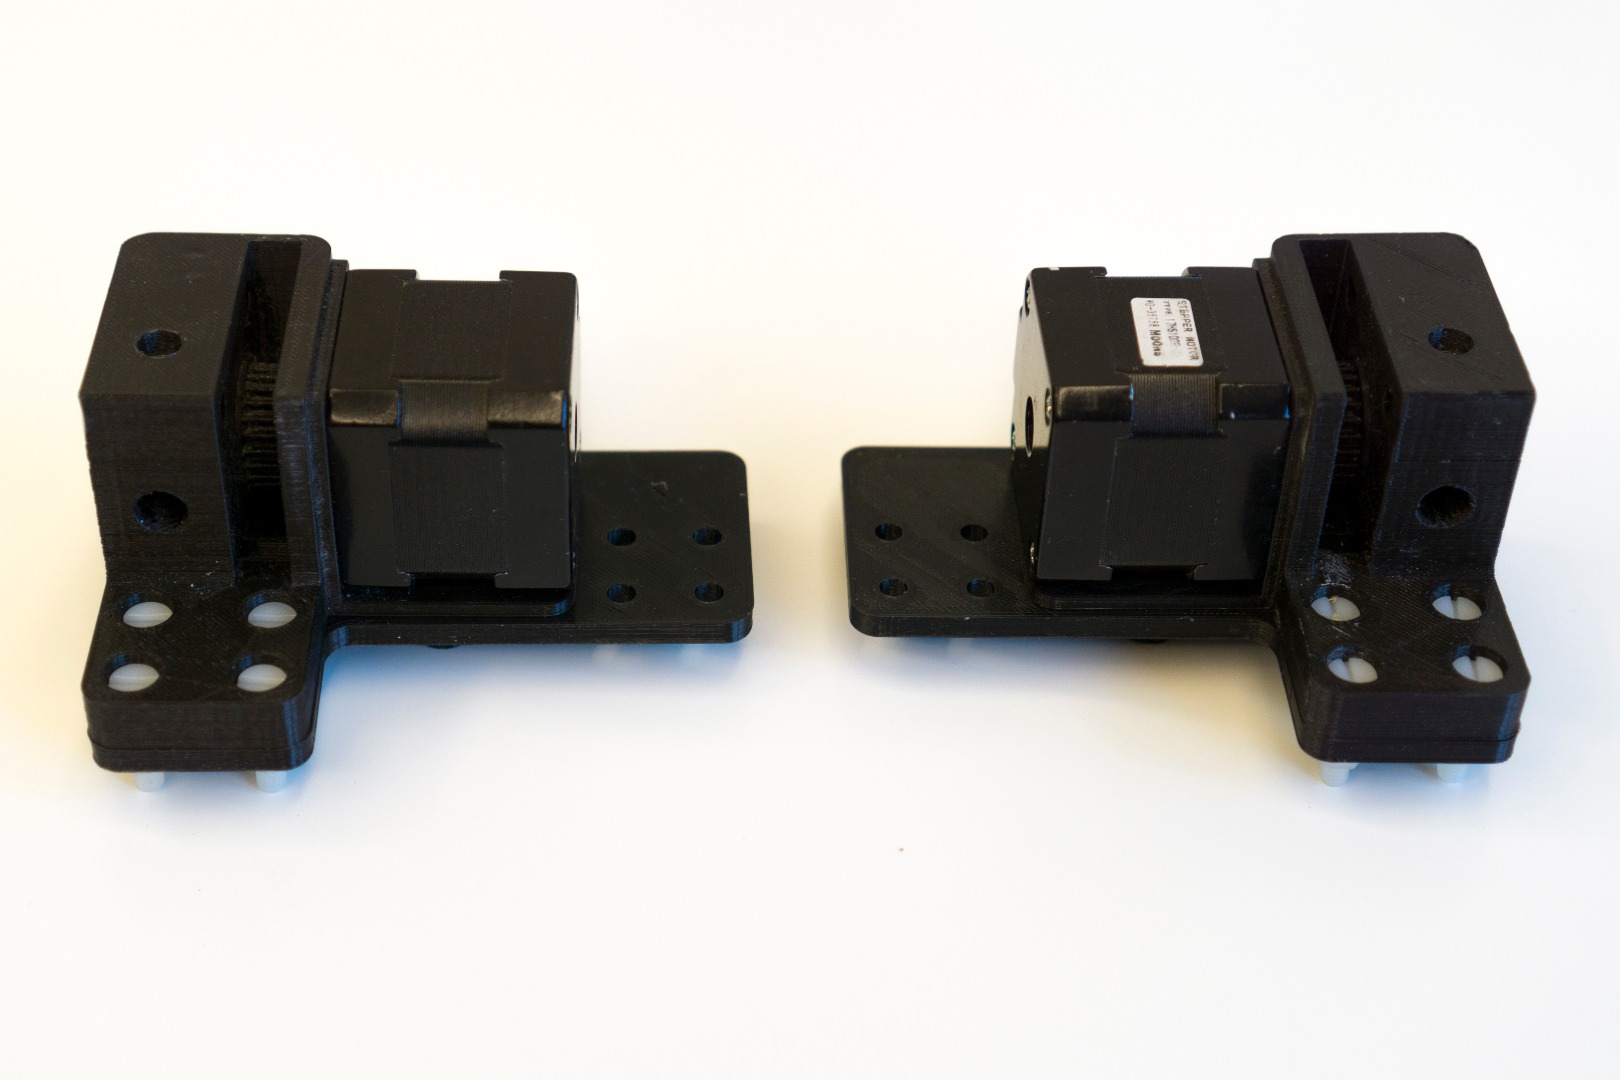 Picture of Bottom Part-B & X-Axis Motors